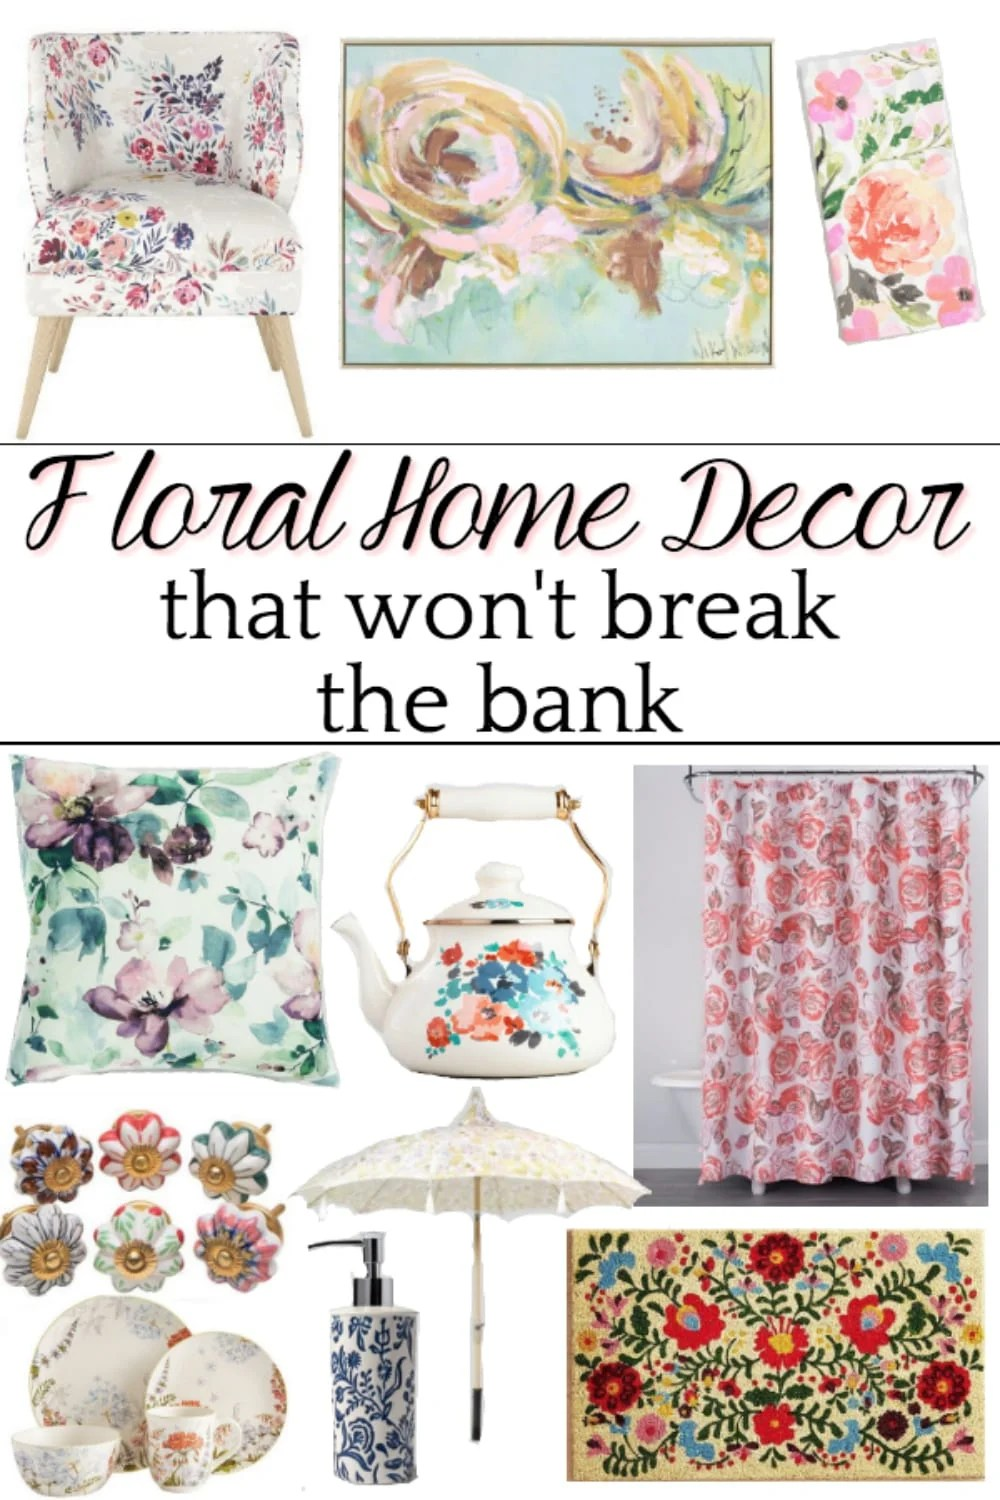 Floral Home Decor on a Budget | A shopping guide with some of the best resources for floral home decor to brighten up a room for spring and summer on a budget. #floralhomedecor